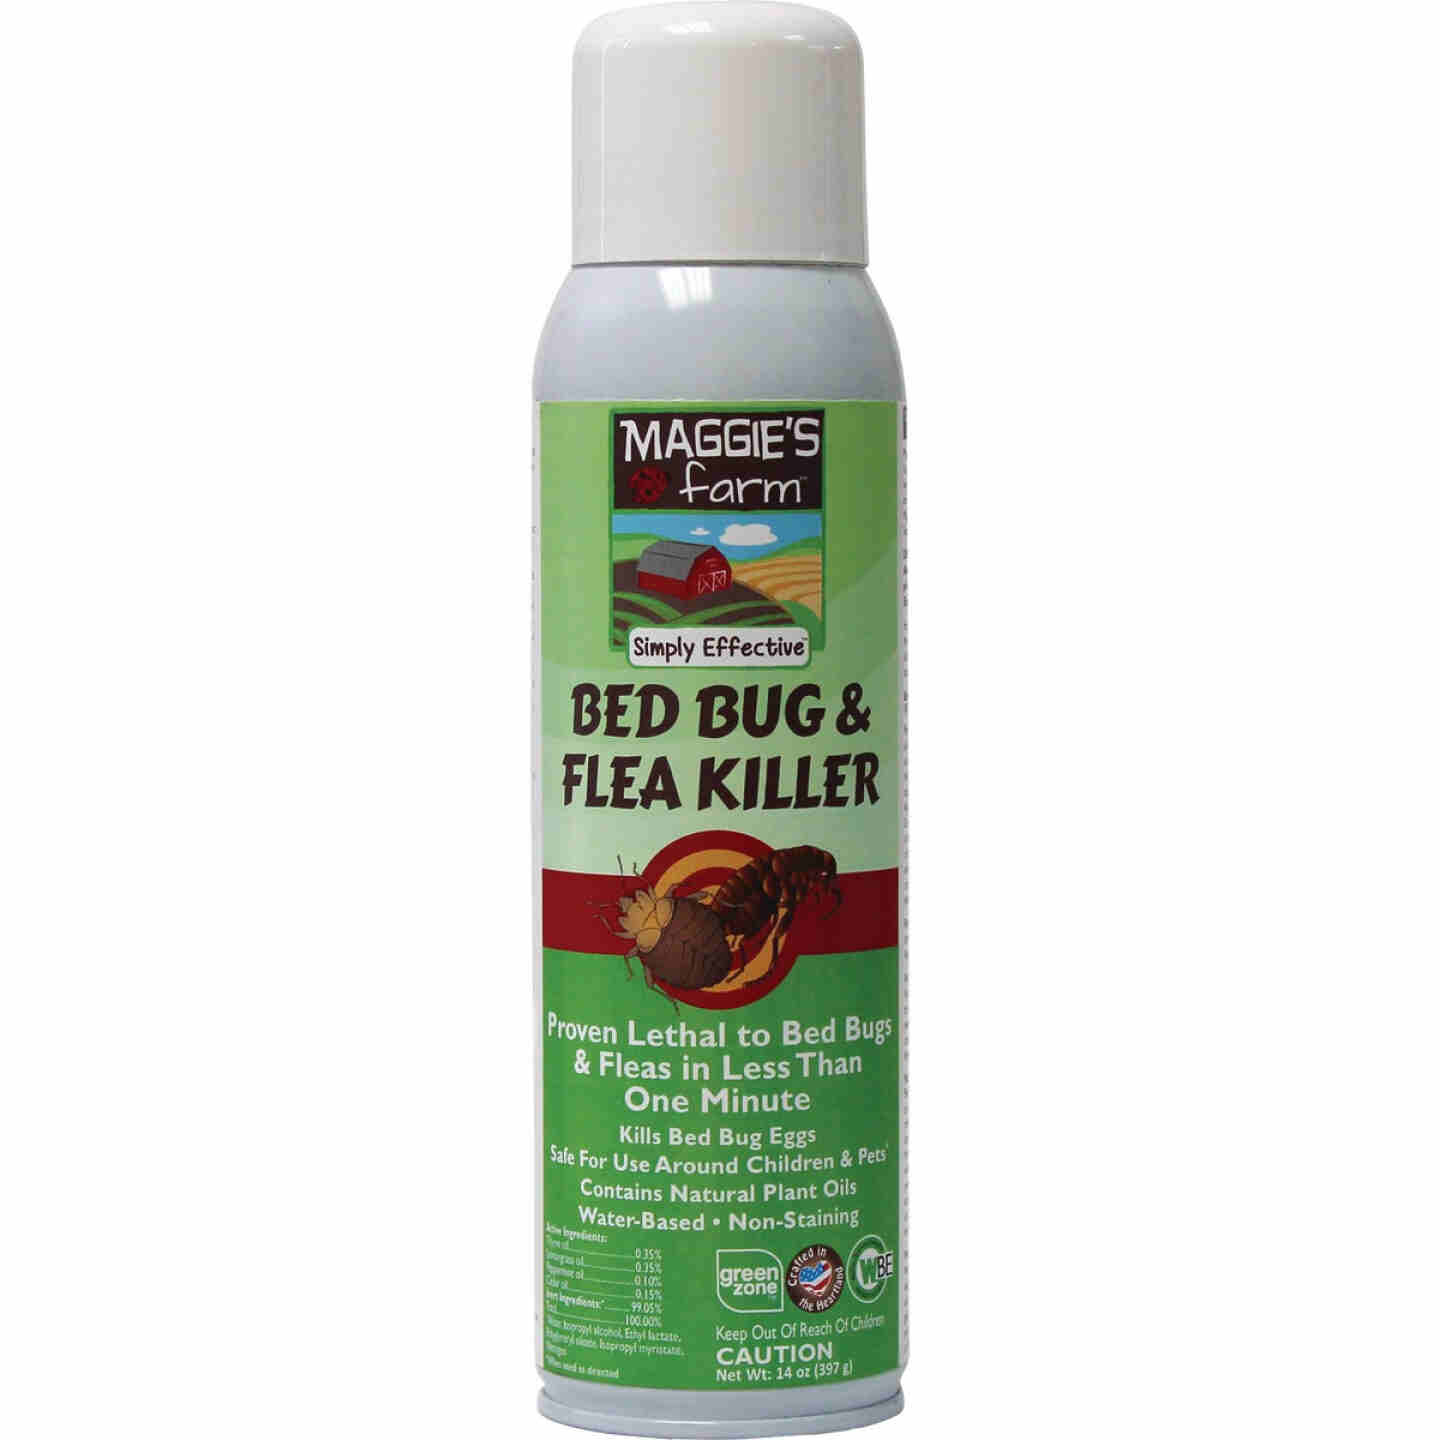 Maggie's Farm 14 Oz. Aerosol Spray Bedbug & Flea Killer Image 1